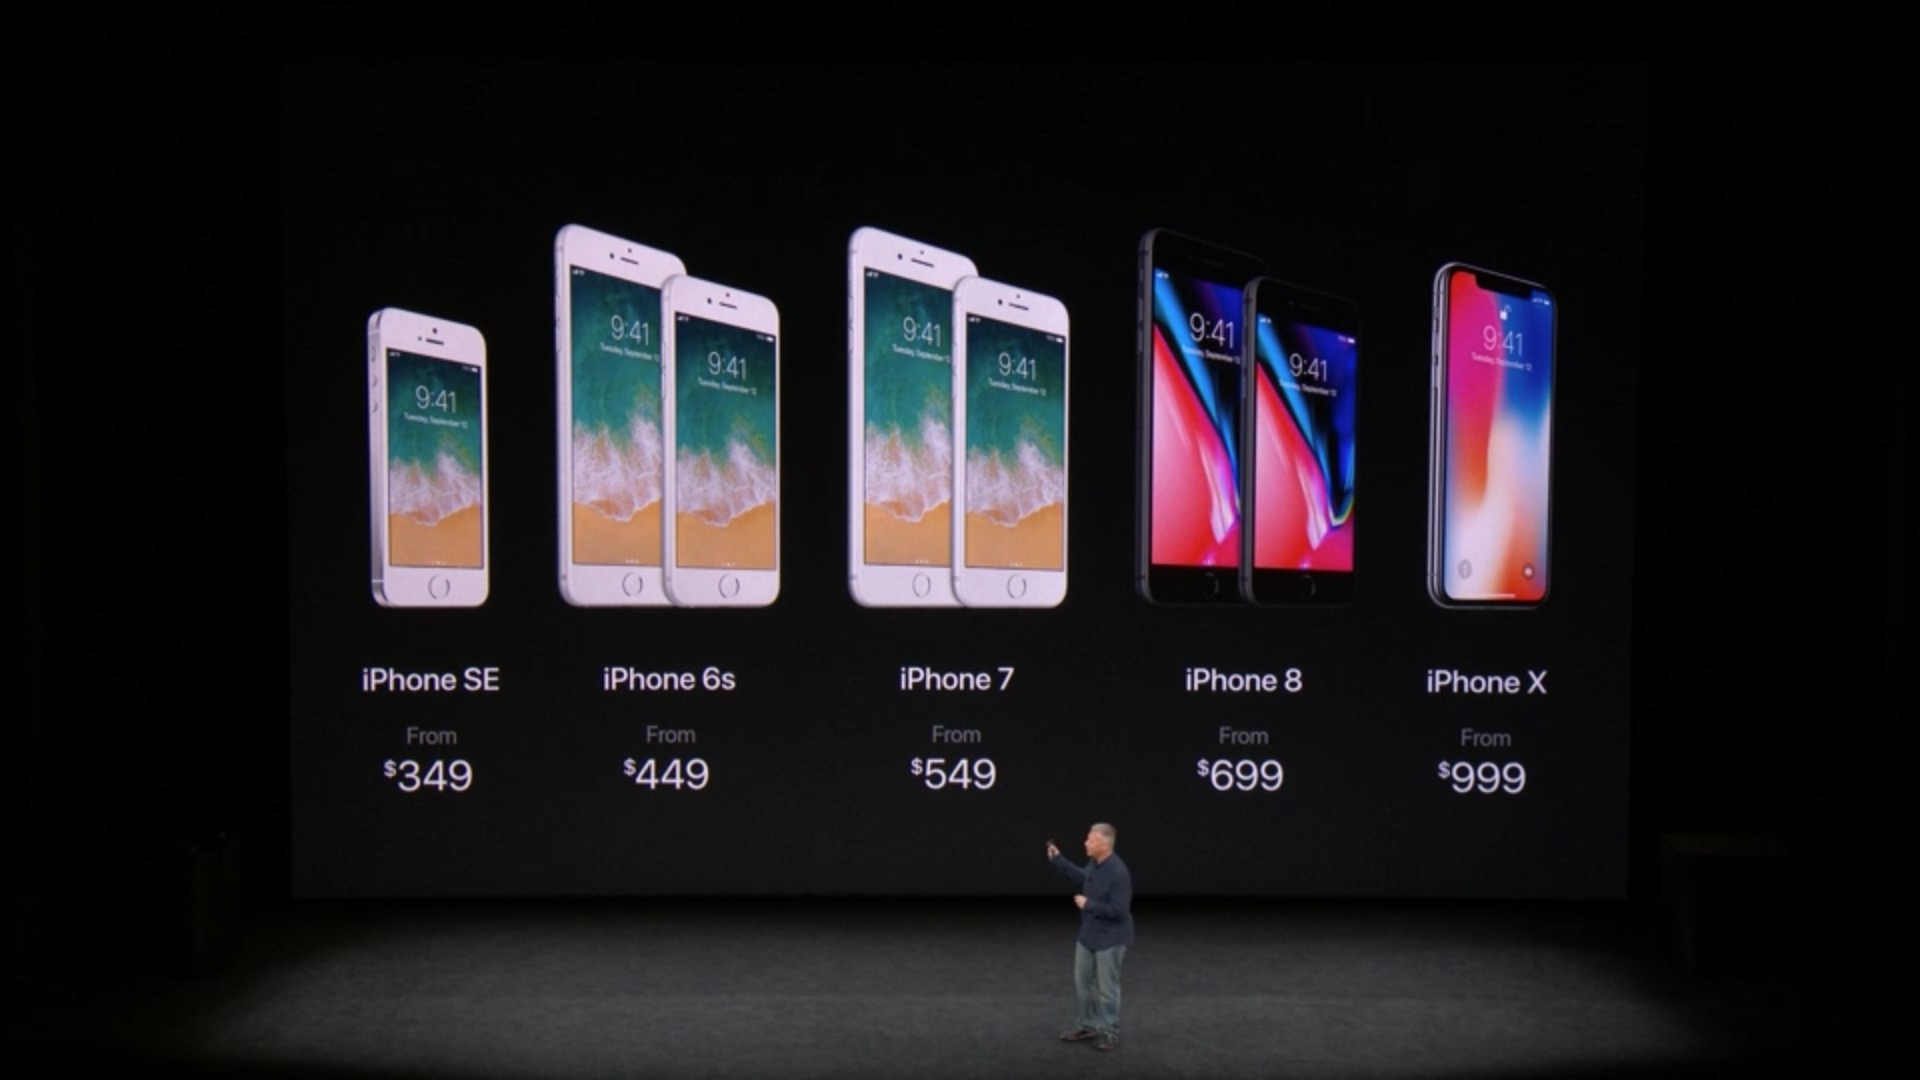 which iPhone model